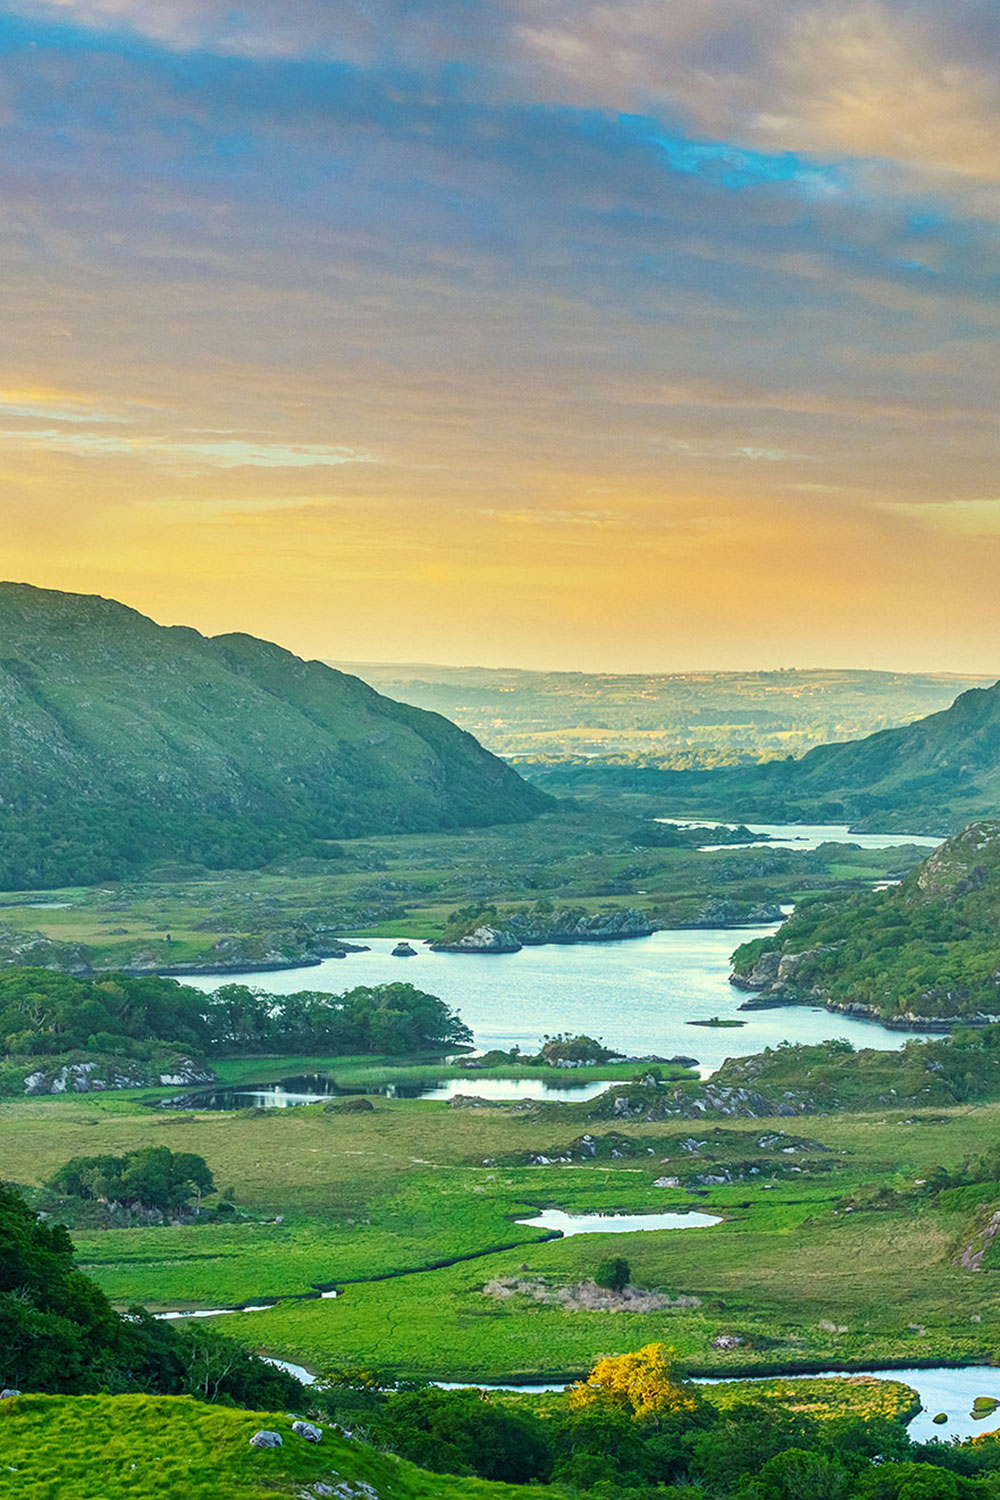 View of mountains and lakes at sunset overlooking the Ring of Kerry from the Ladies View, Killarney National Park, Ireland.